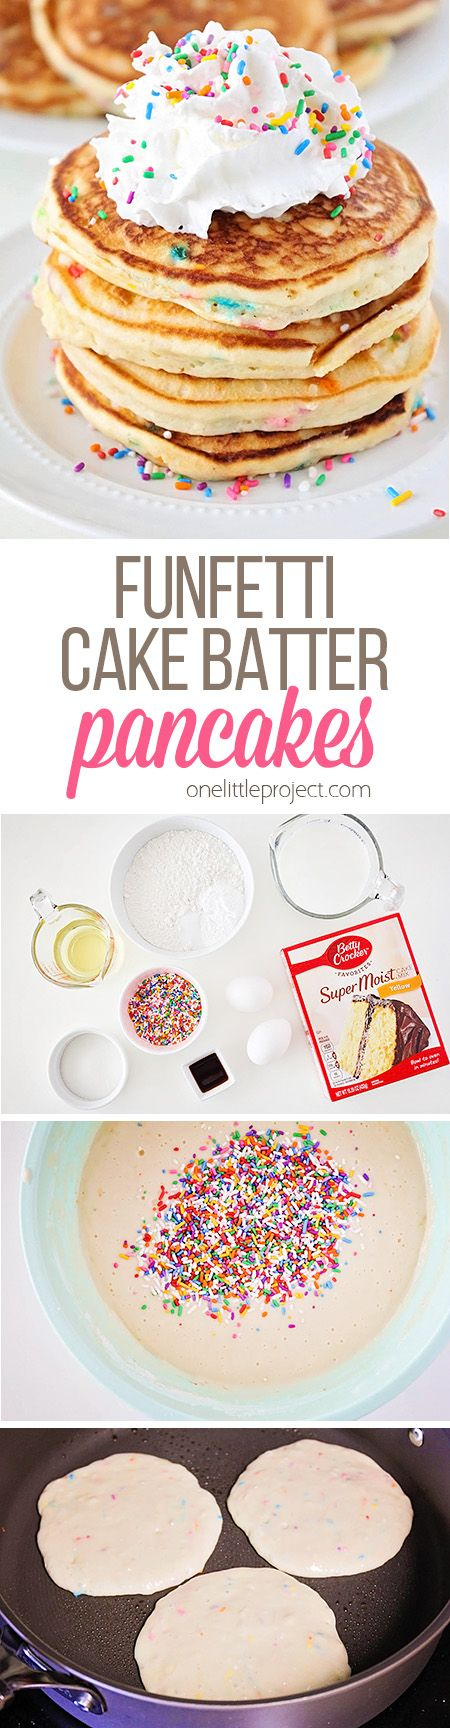 These funfetti cake batter pancakes are so fluffy and sweet, and loaded with sprinkles! They're the perfect breakfast for any special occasion! (Pancake Recipe)